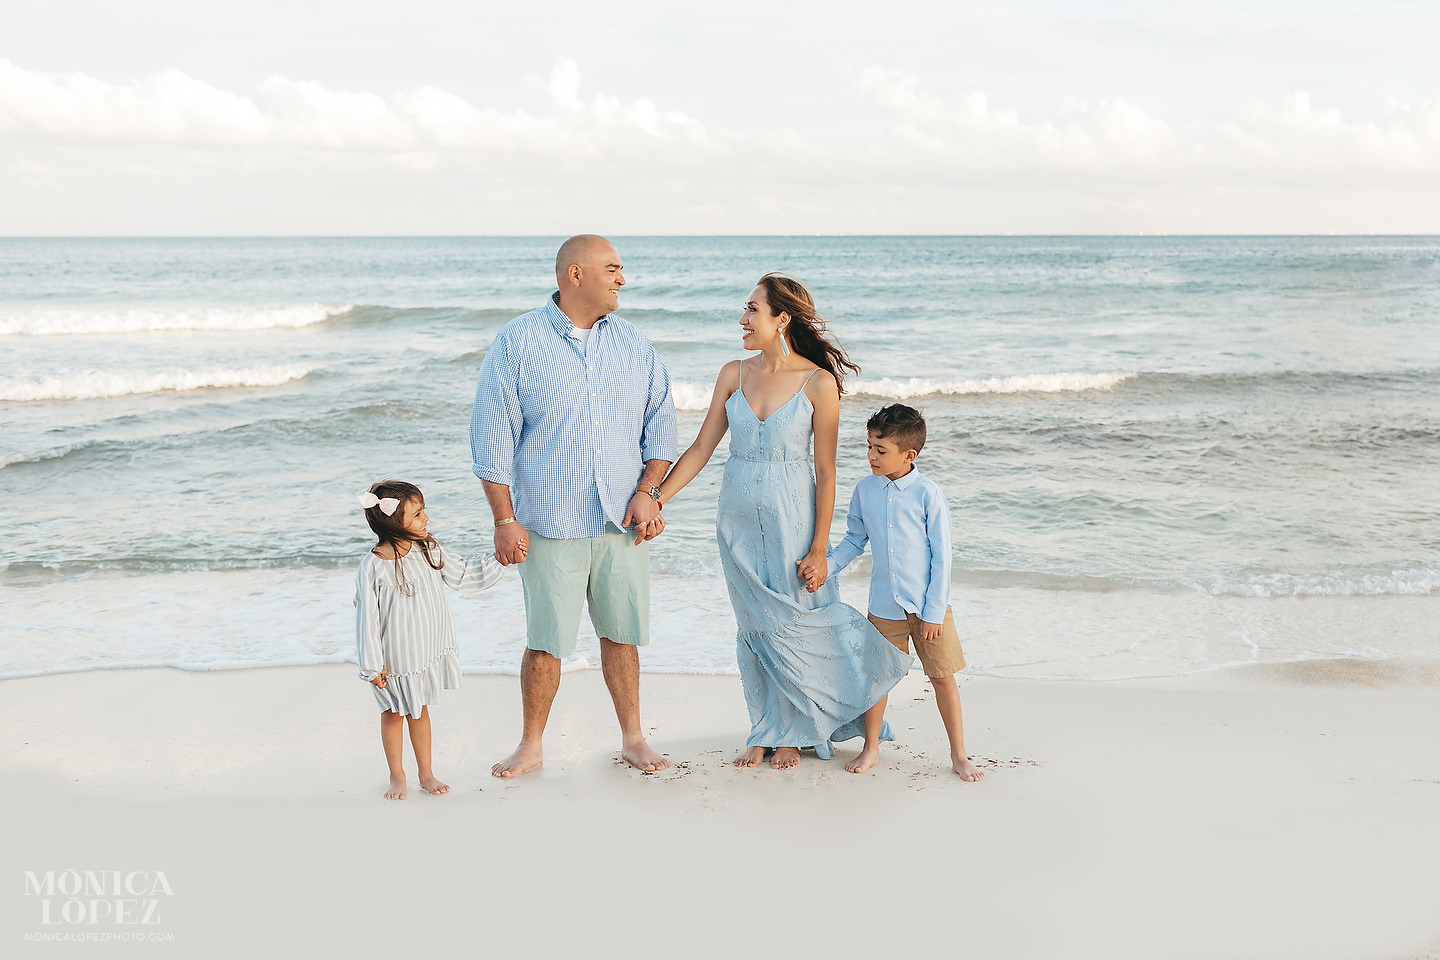 Playa del Carmen Family Portraits - Uribe Family by Monica Lopez Photography